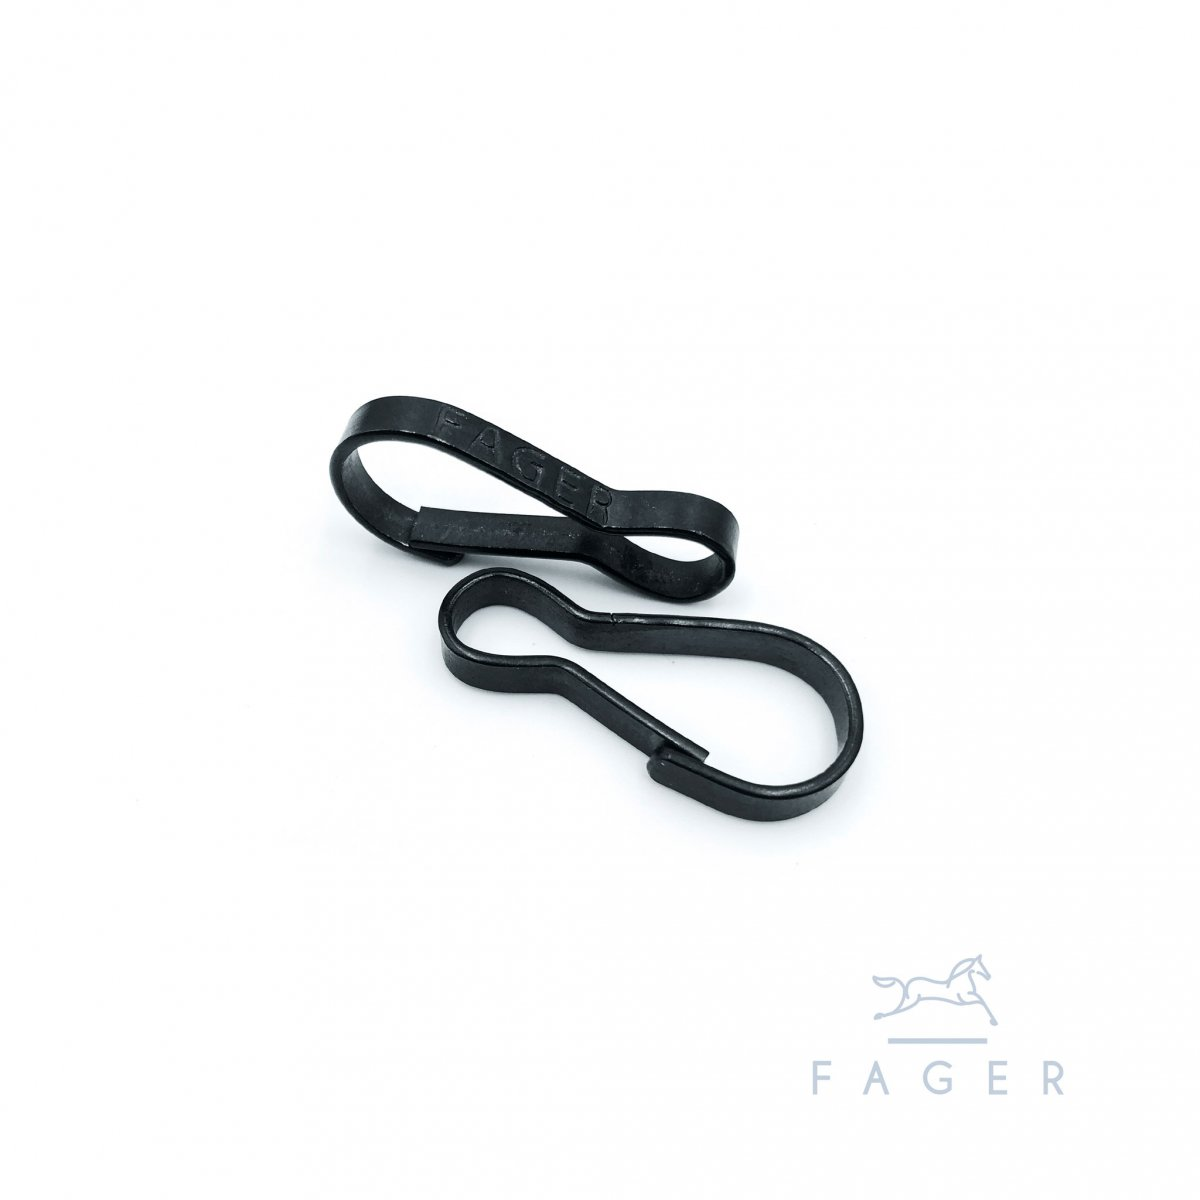 fager-secure-clasp-svart-black-edition